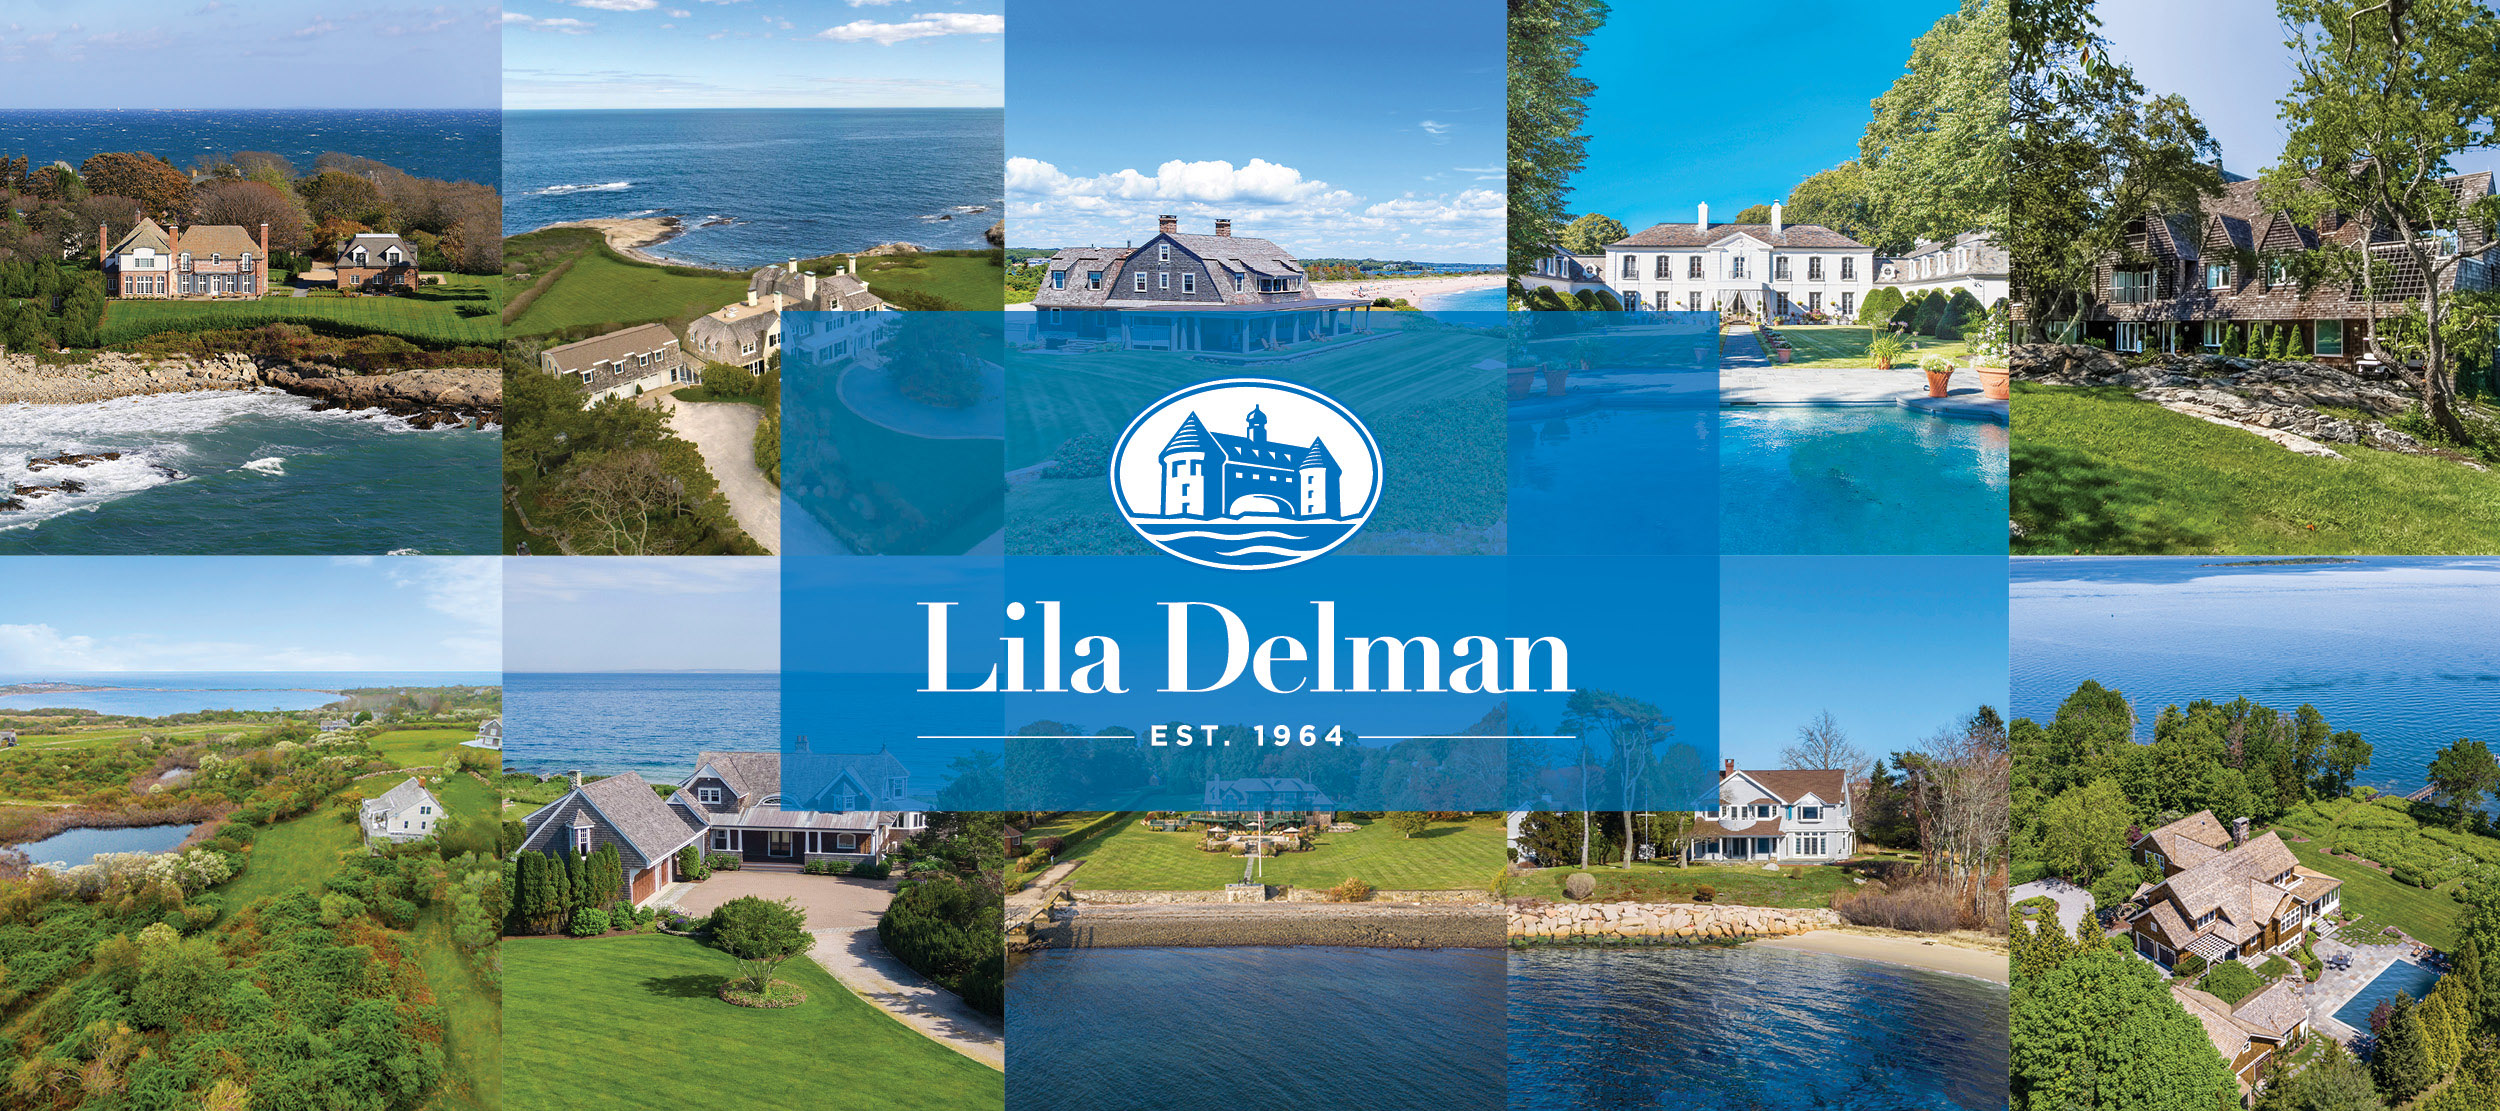 LILA DELMAN REAL ESTATE CELEBRATES A MONUMENTAL 2020, HAVING CLOSED OVER $816M IN SALES VOLUME AND MAINTAINED LEADERSHIP OF RHODE ISLAND'S LUXURY MARKET